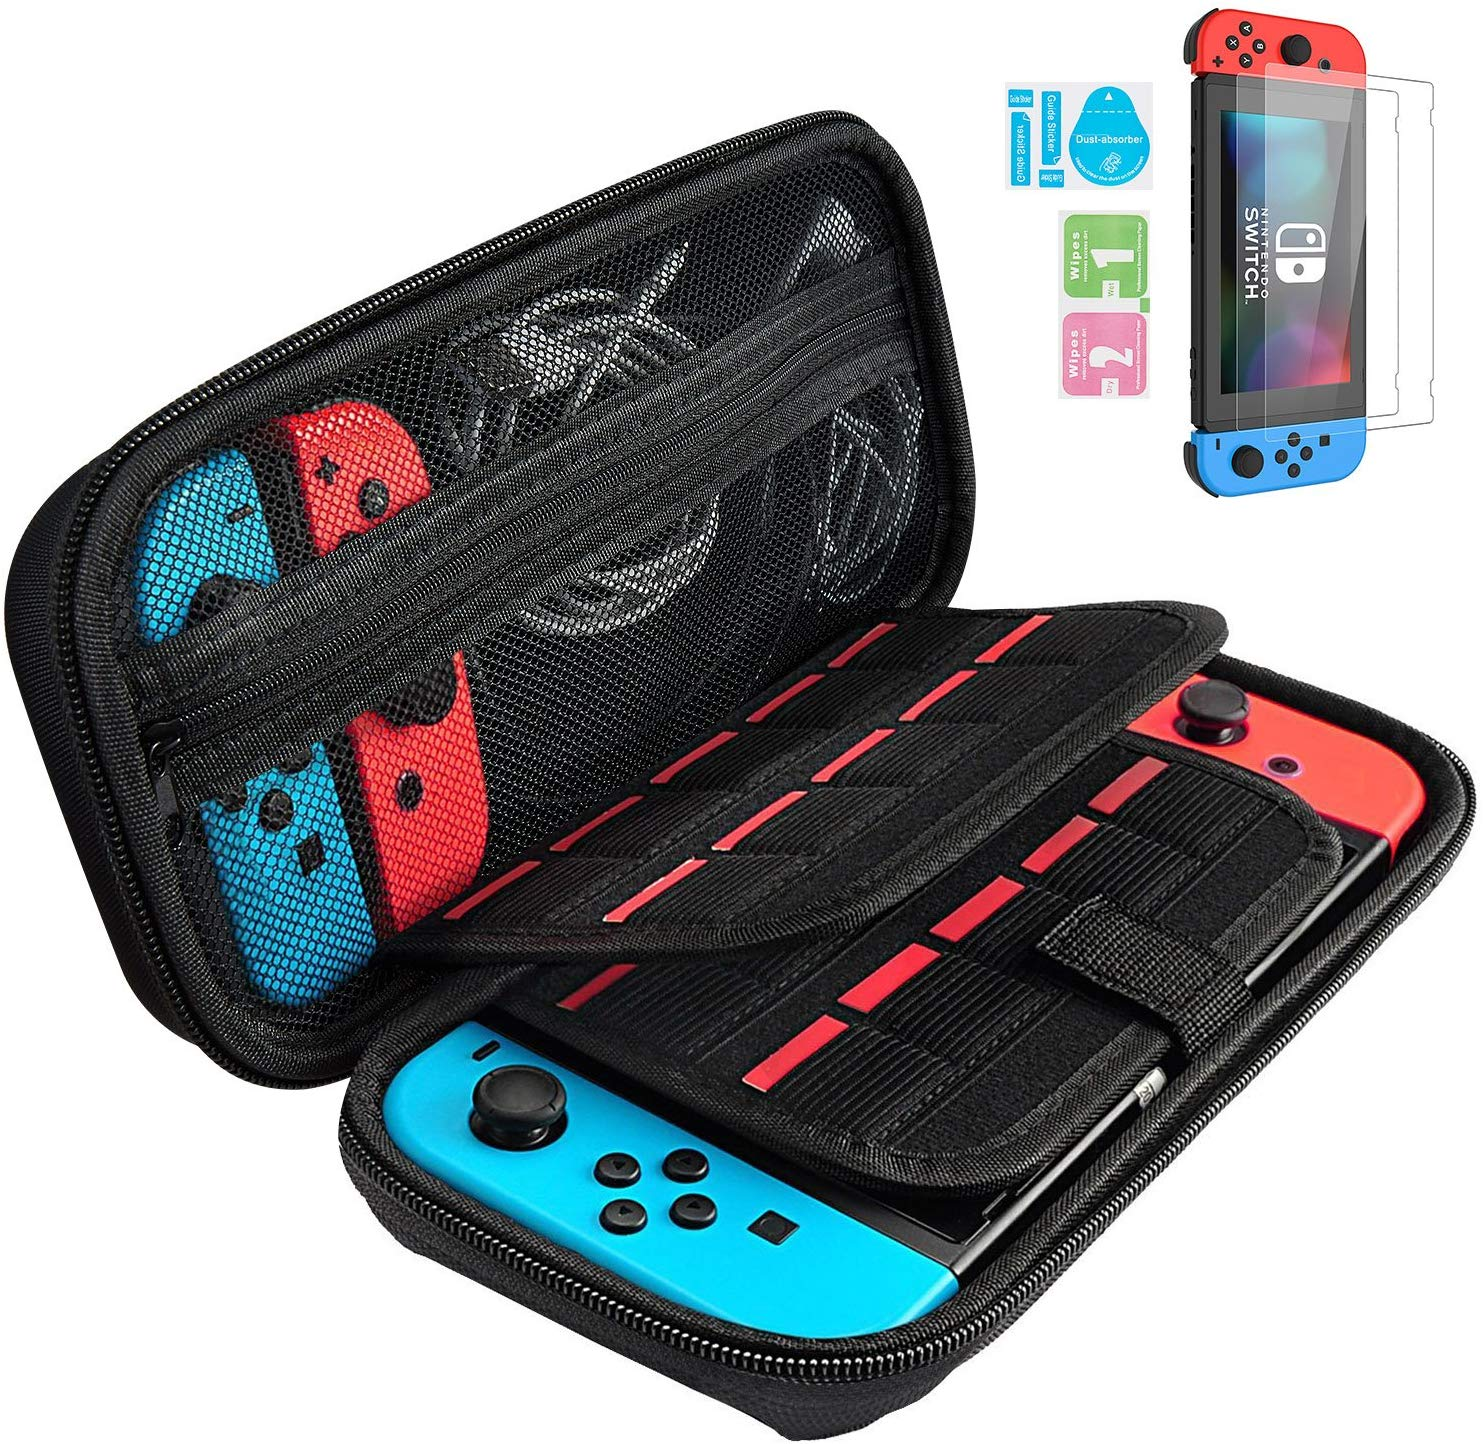 Nintendo Switch Carry Case + 2pcs Tempered Glass Screen Protector, Gim Portable Protective Hard Shell Cover Travel Storage Bag With 20 Game Cartridge For Nintendo Switch Console & Accessories